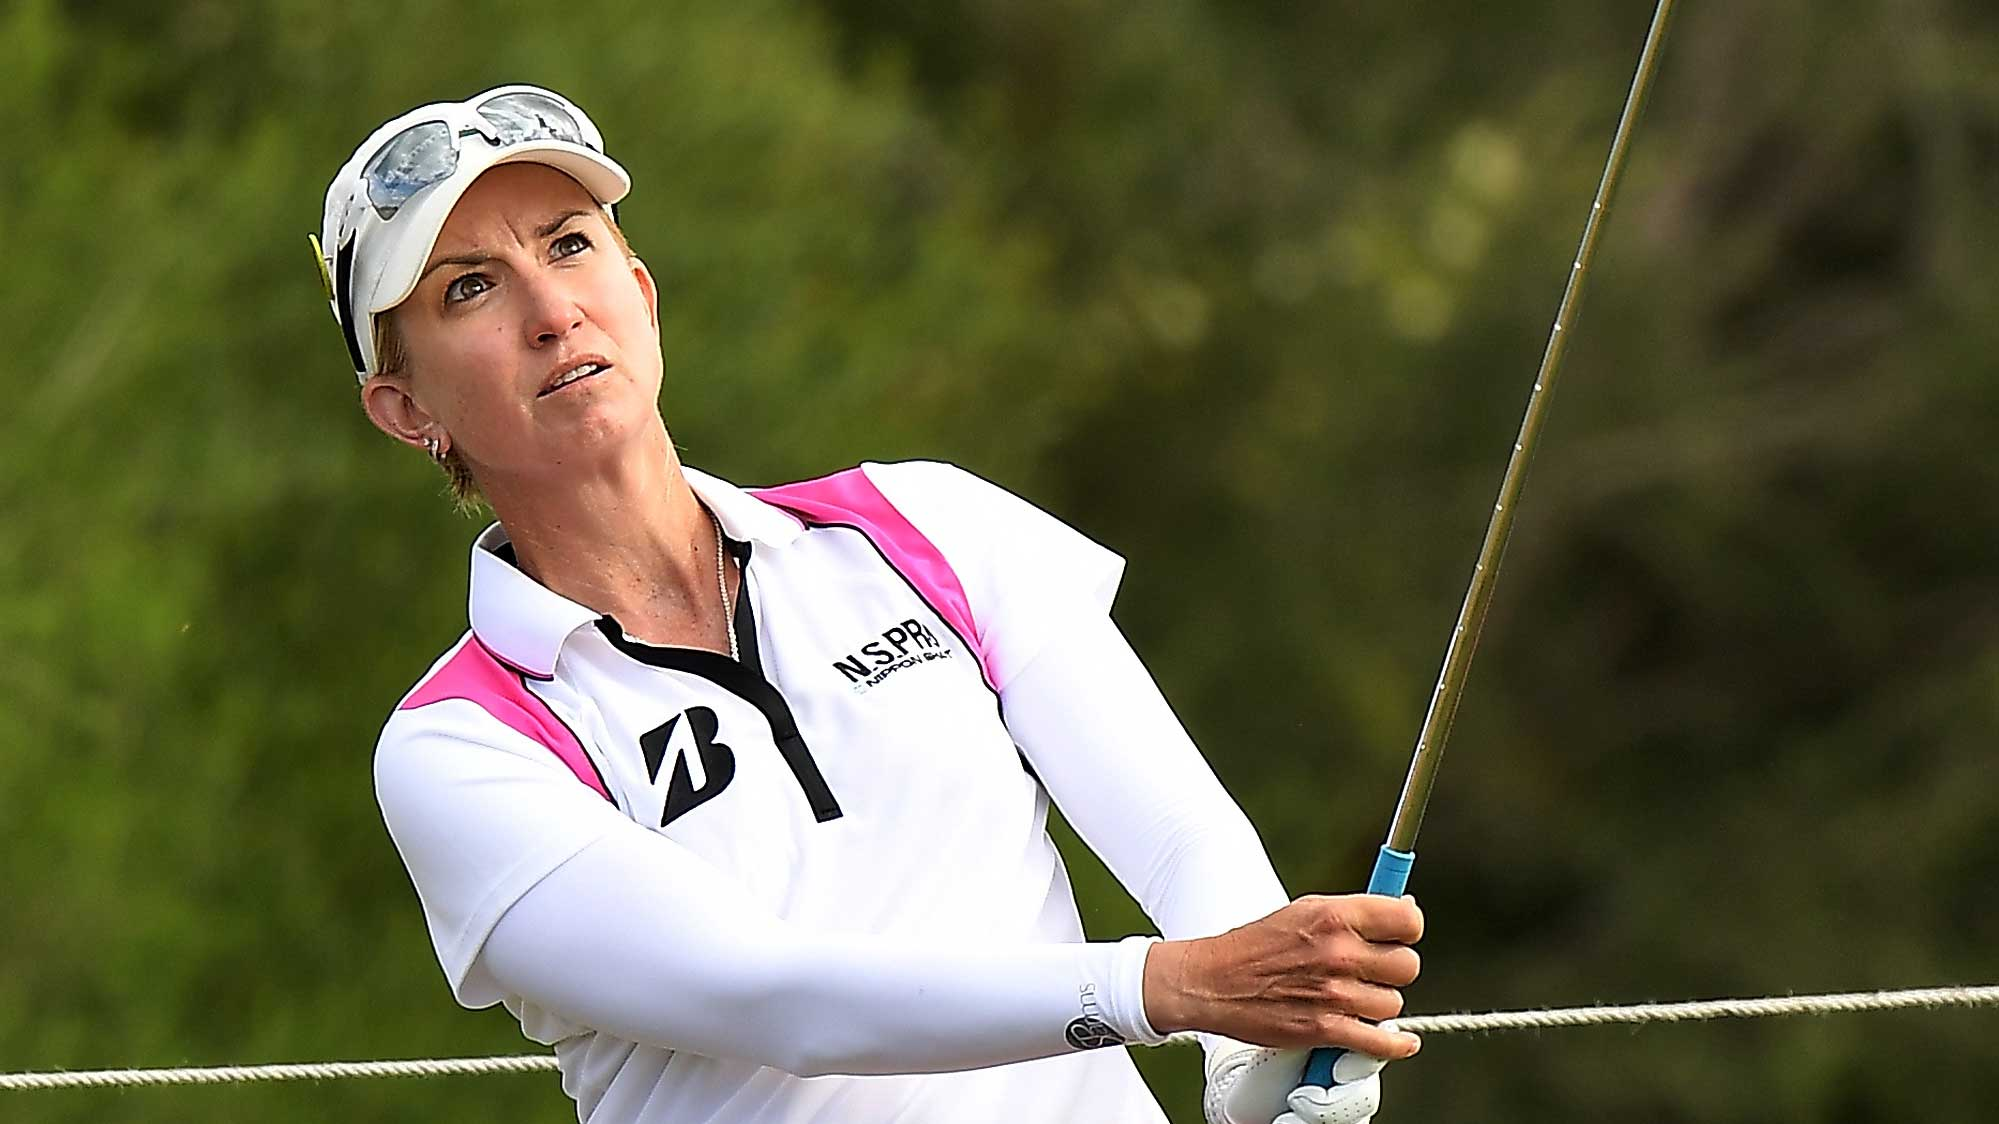 Karrie Webb 7 LPGA majors Karrie Webb 7 LPGA majors new pictures